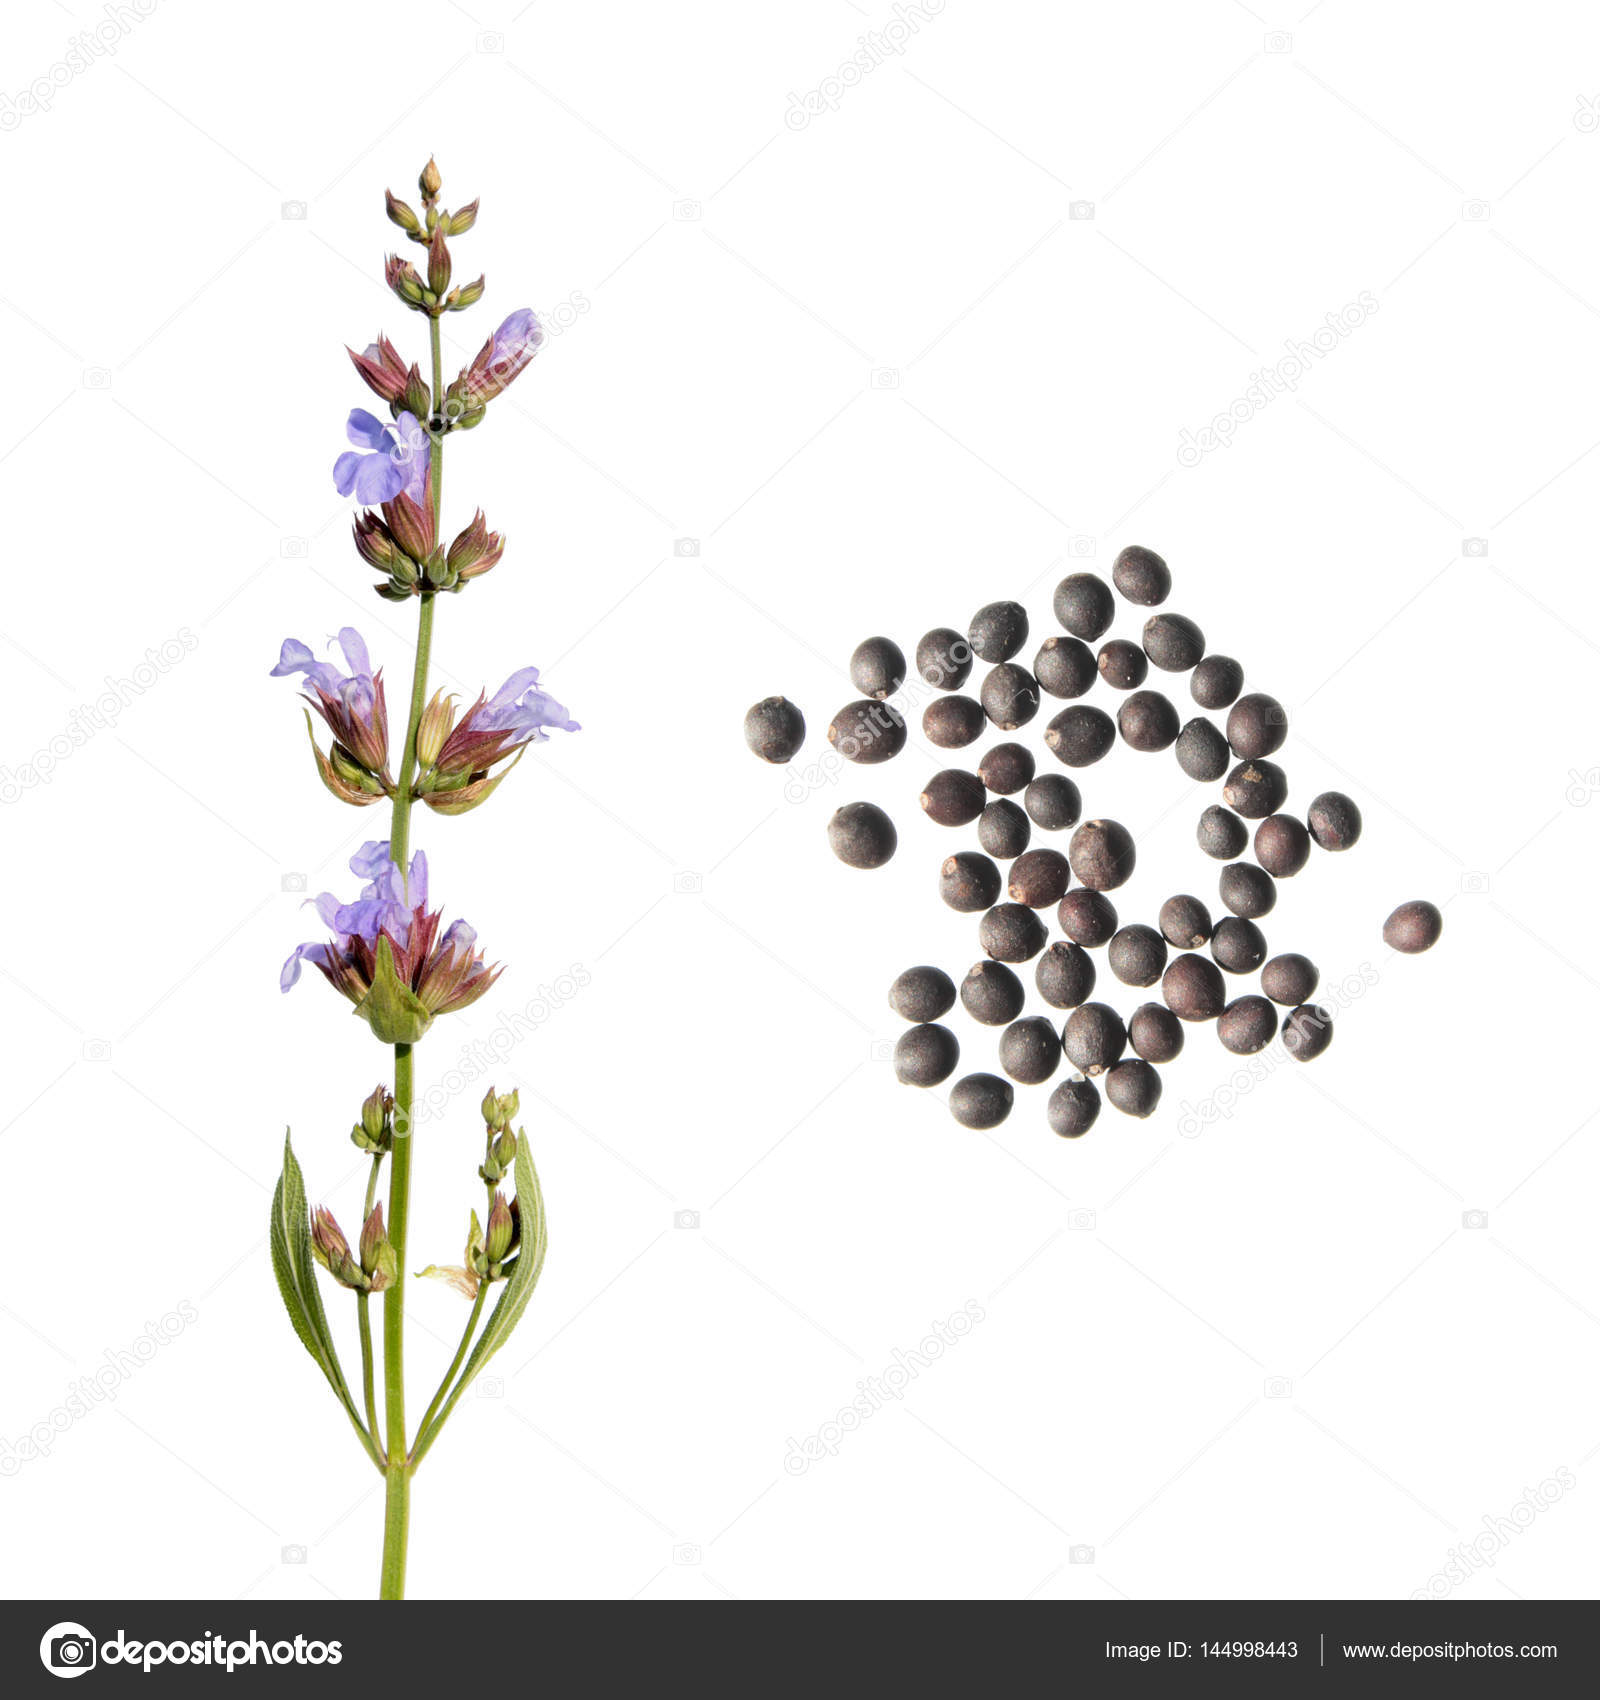 Common Sage Flower And Seeds Isolated On White Background Seeds Of